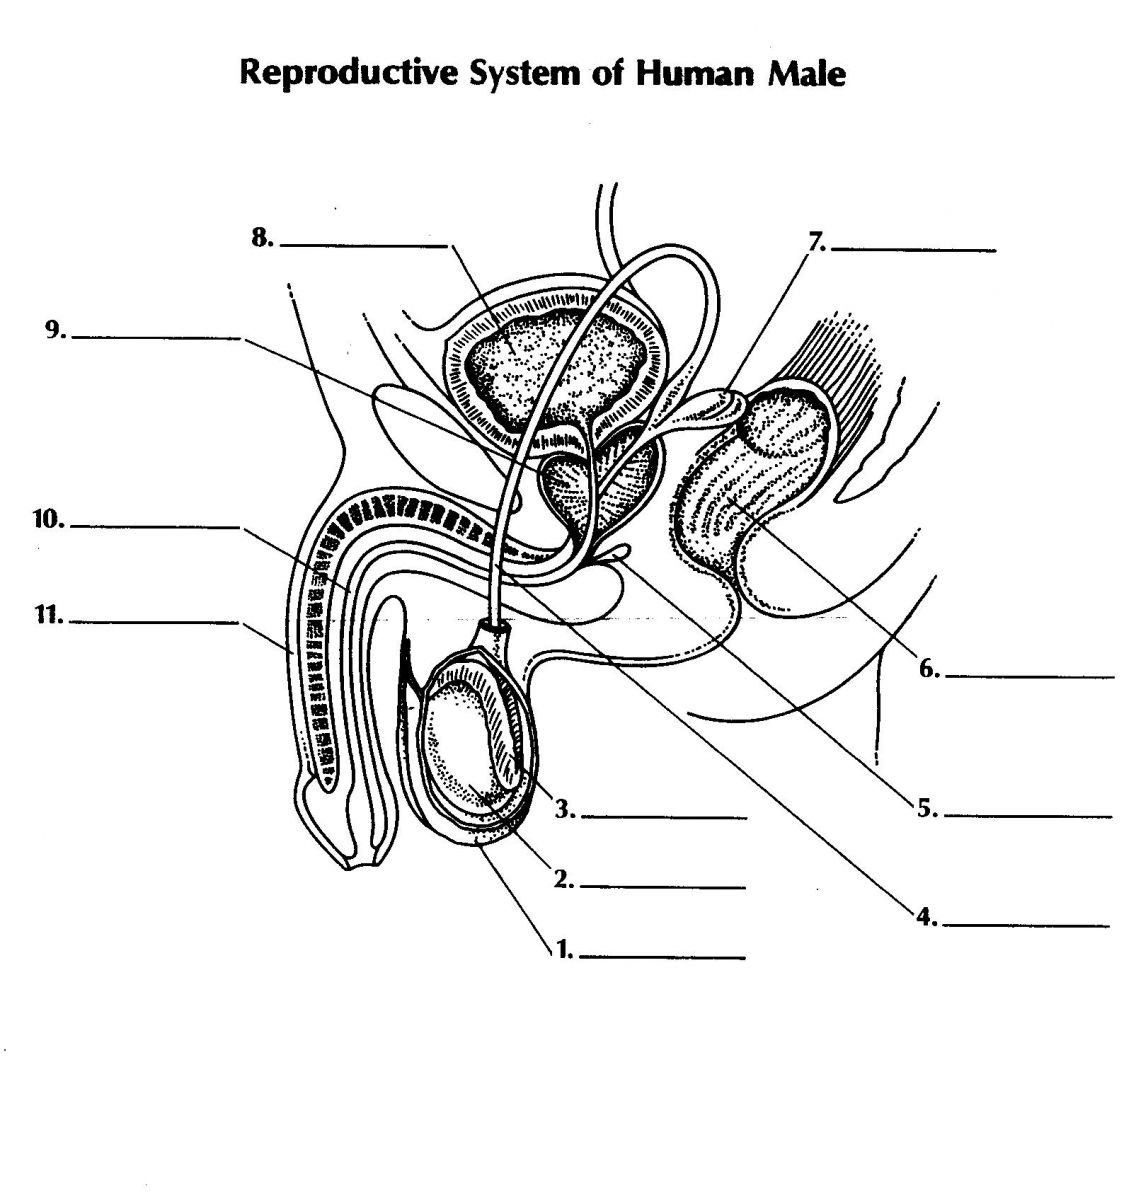 Reproductive System Of The Human Male